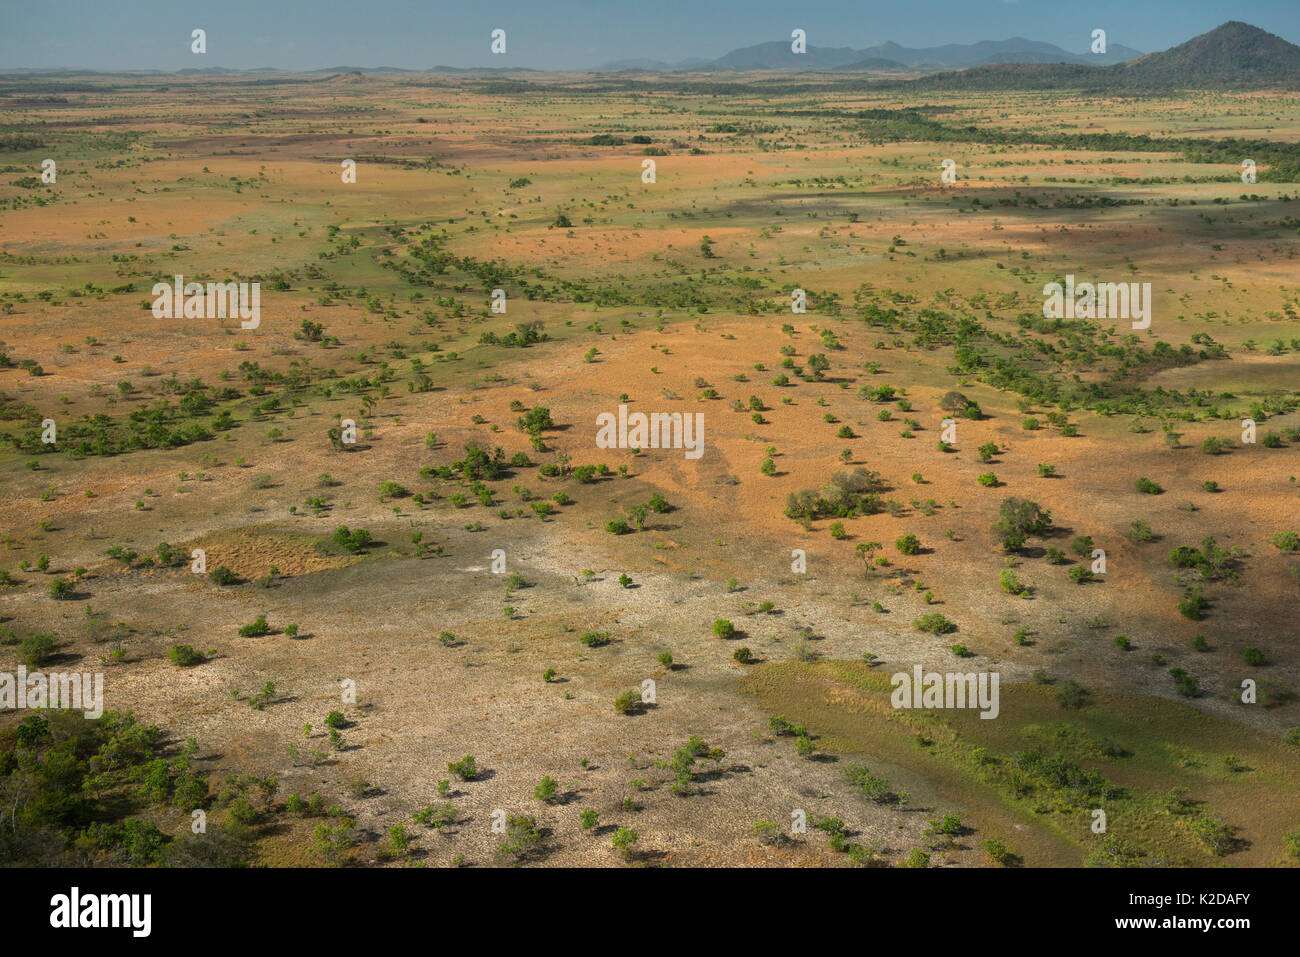 Aerial view of Rupununi savanna, Guyana, South America - Stock Image